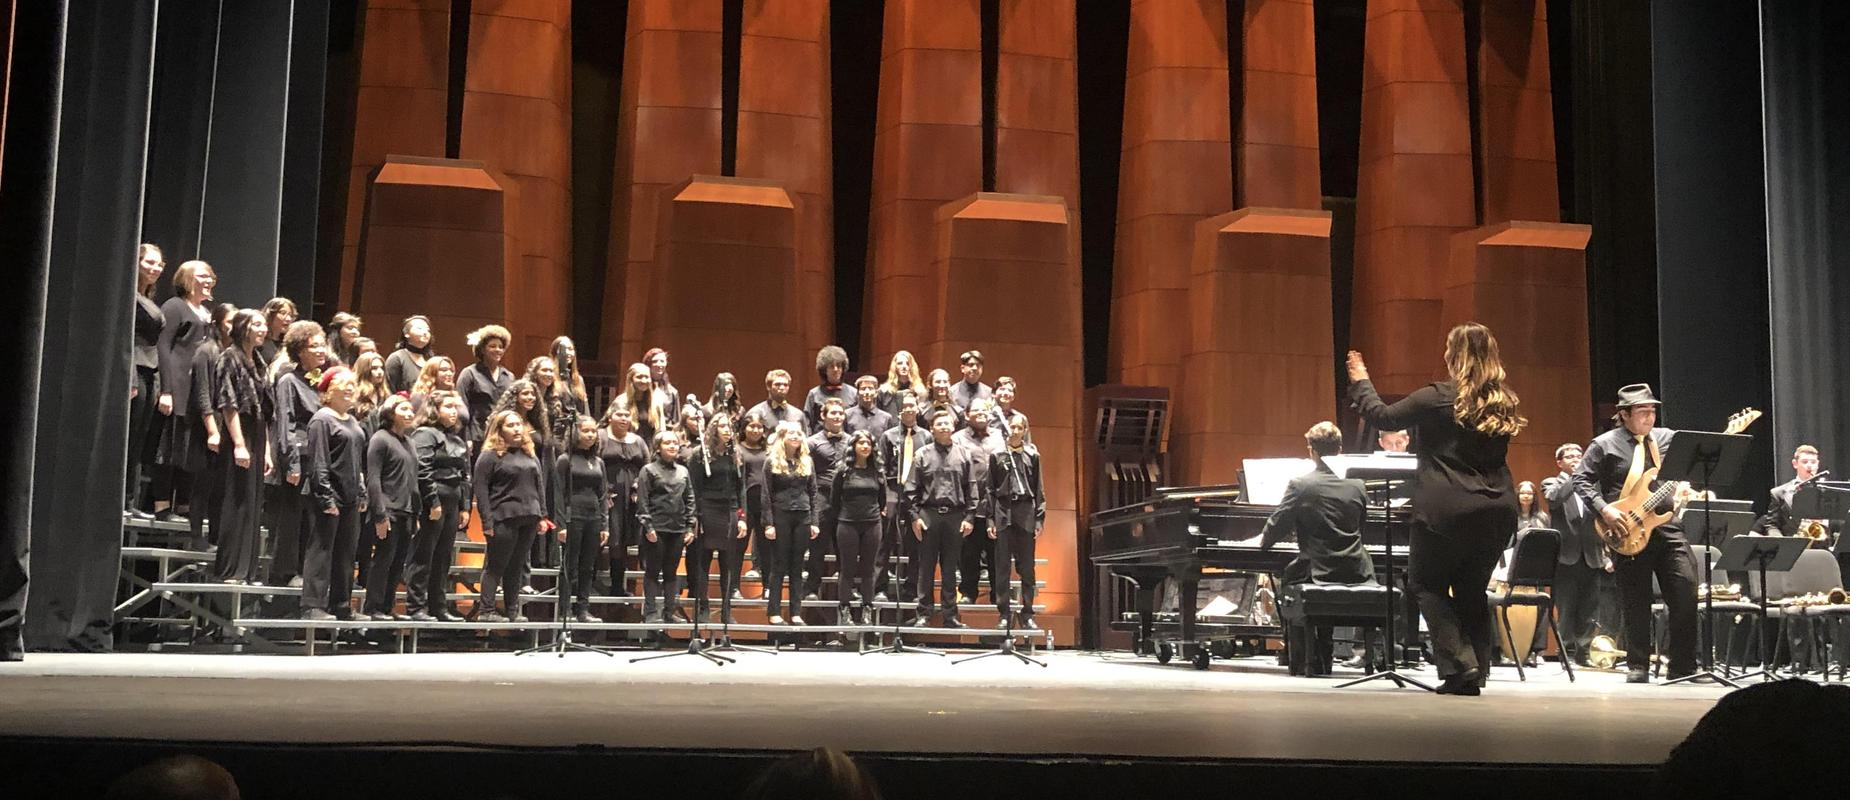 2018 Winter Concert at California Center for the Arts